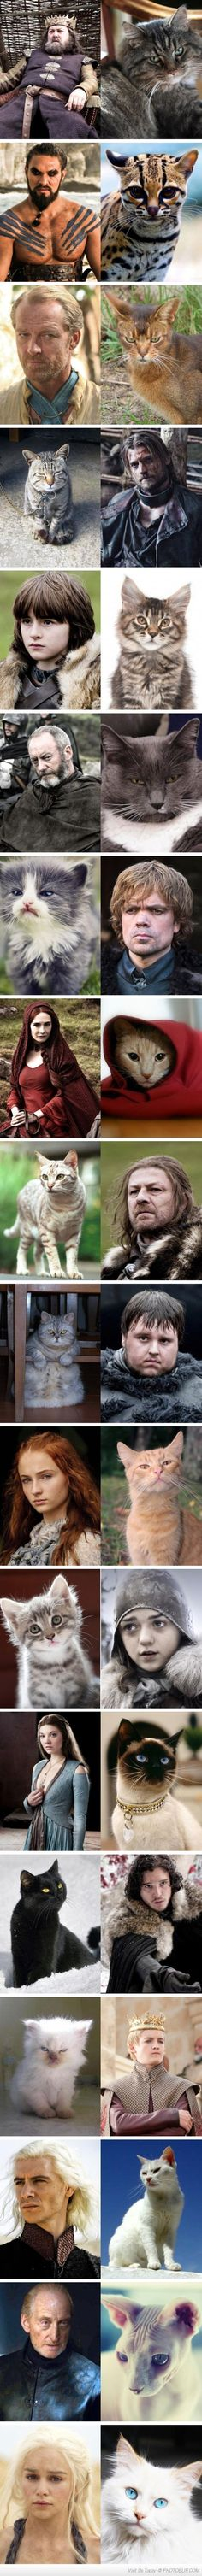 The Game Of Thrones Cast As Cats - this is so accurate!